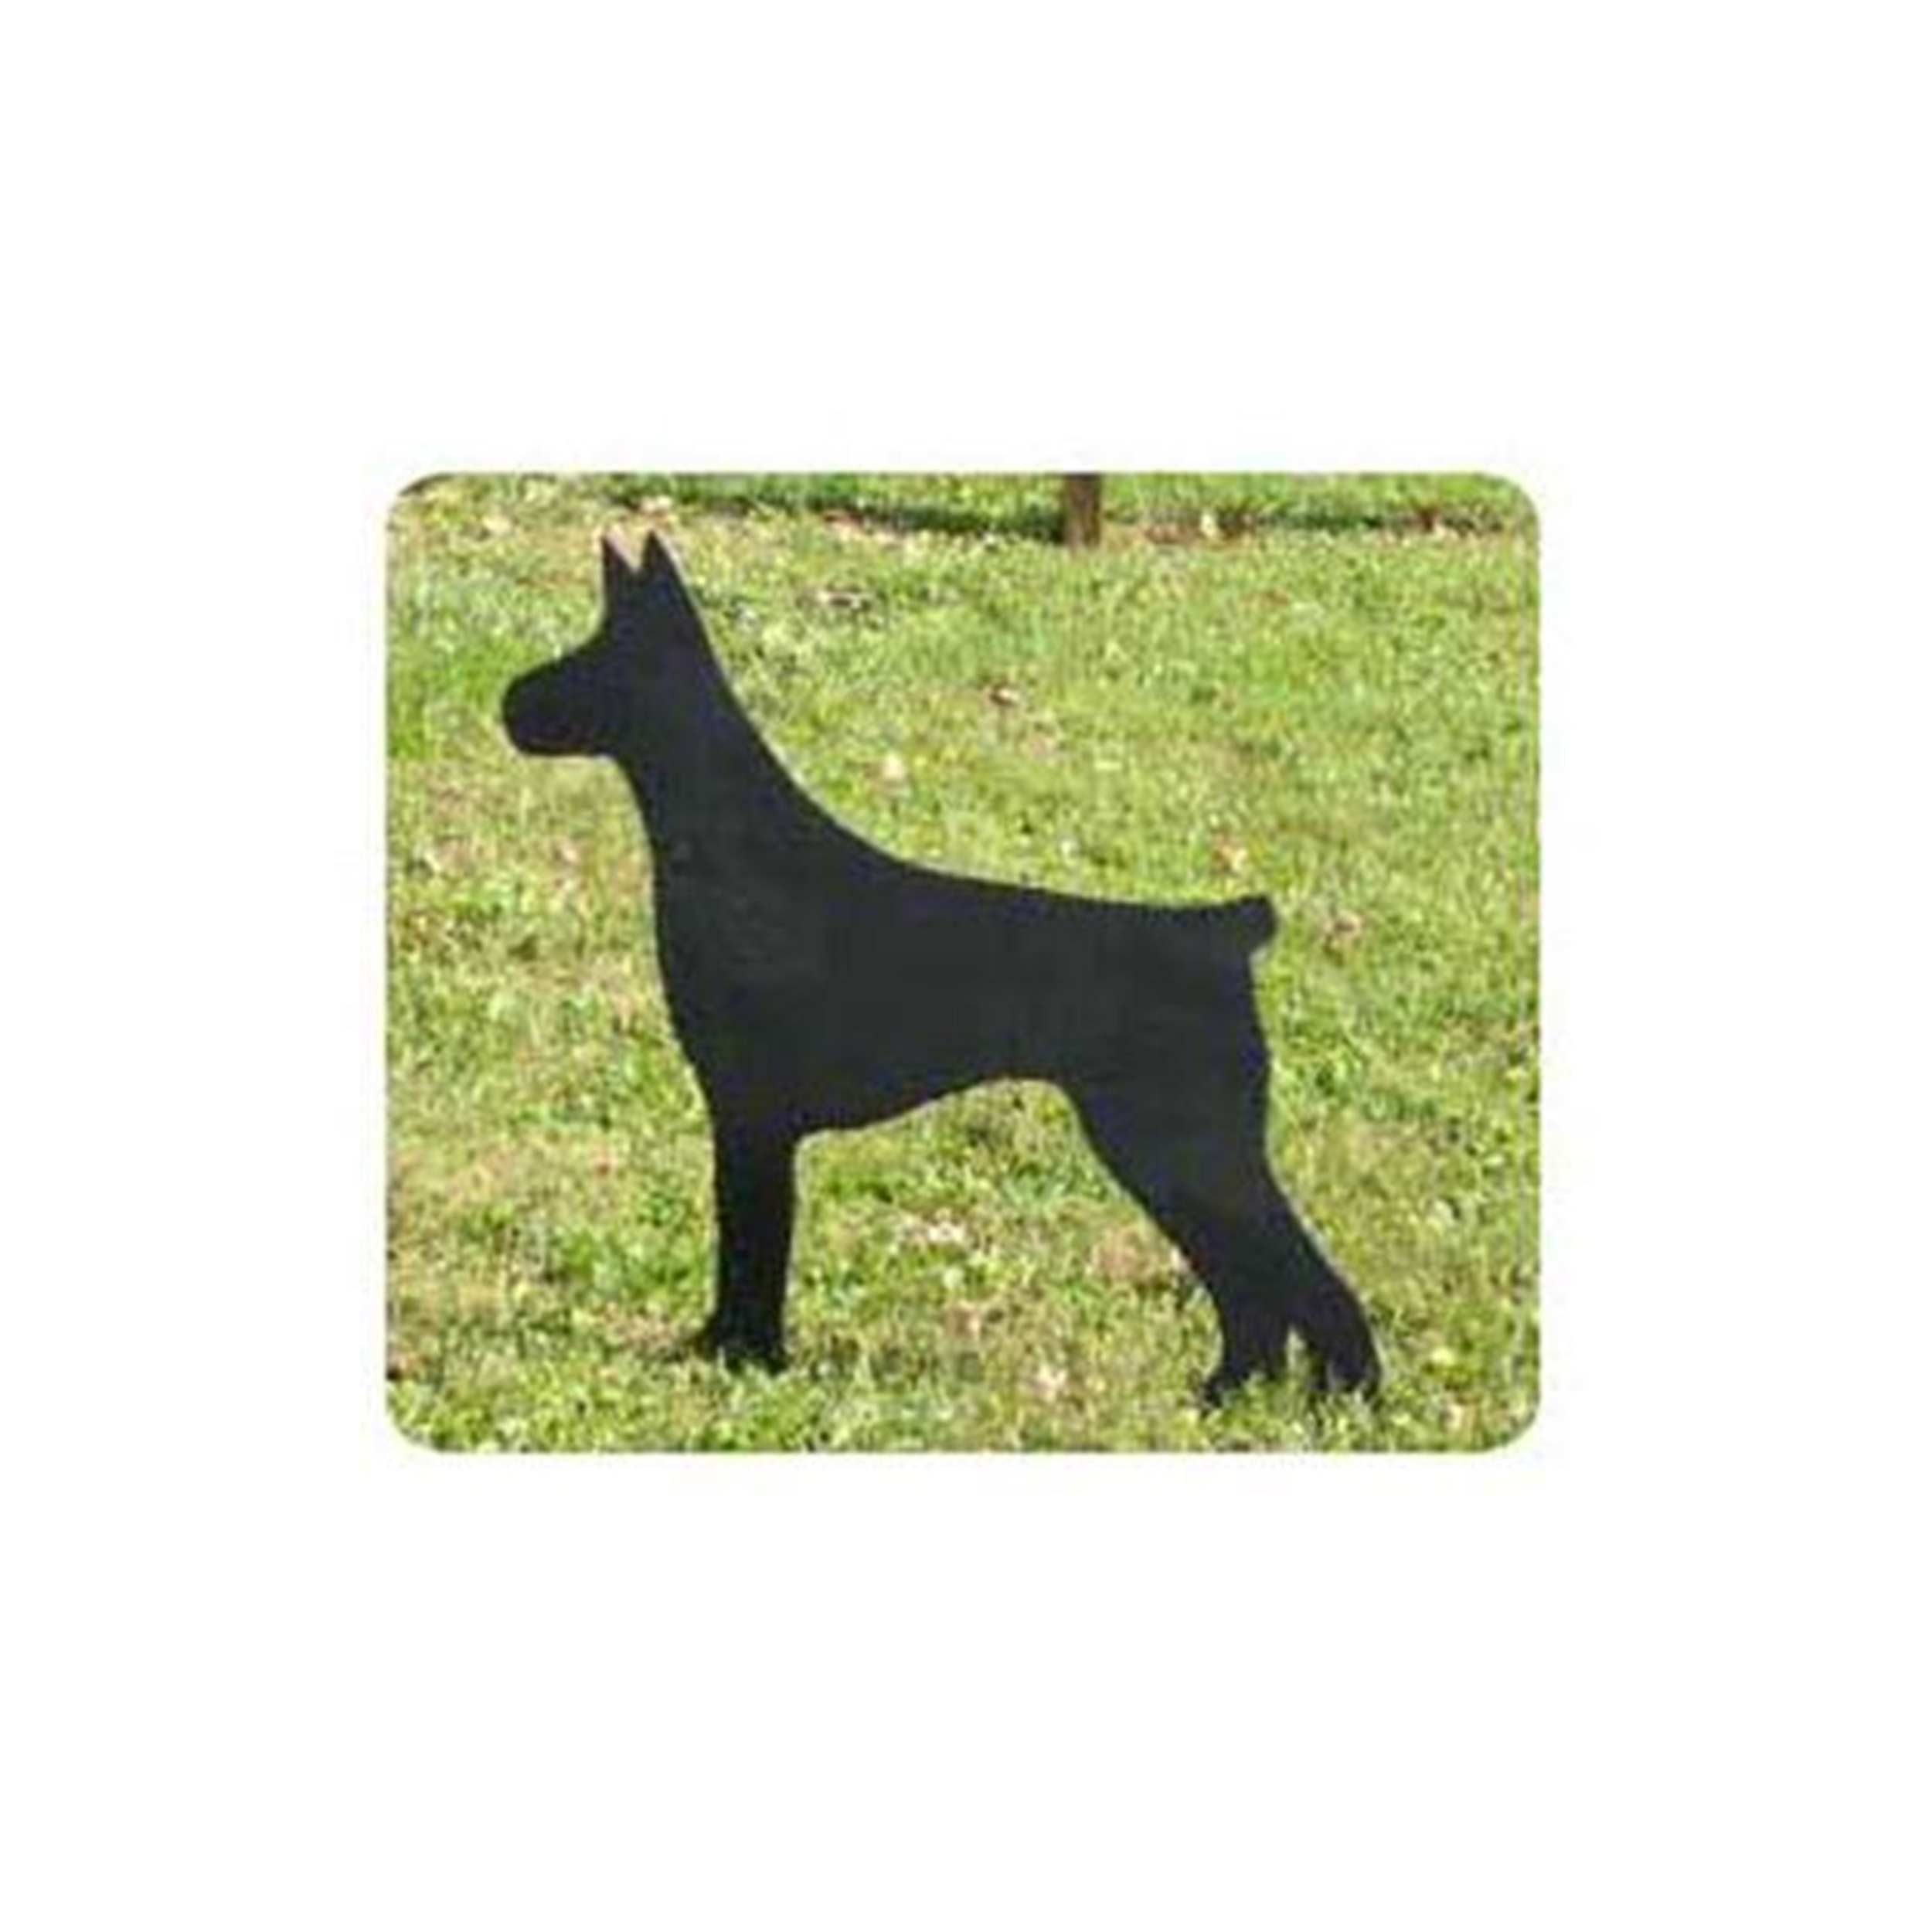 Woodworking Project Paper Plan to Build Doberman Dog Shadow